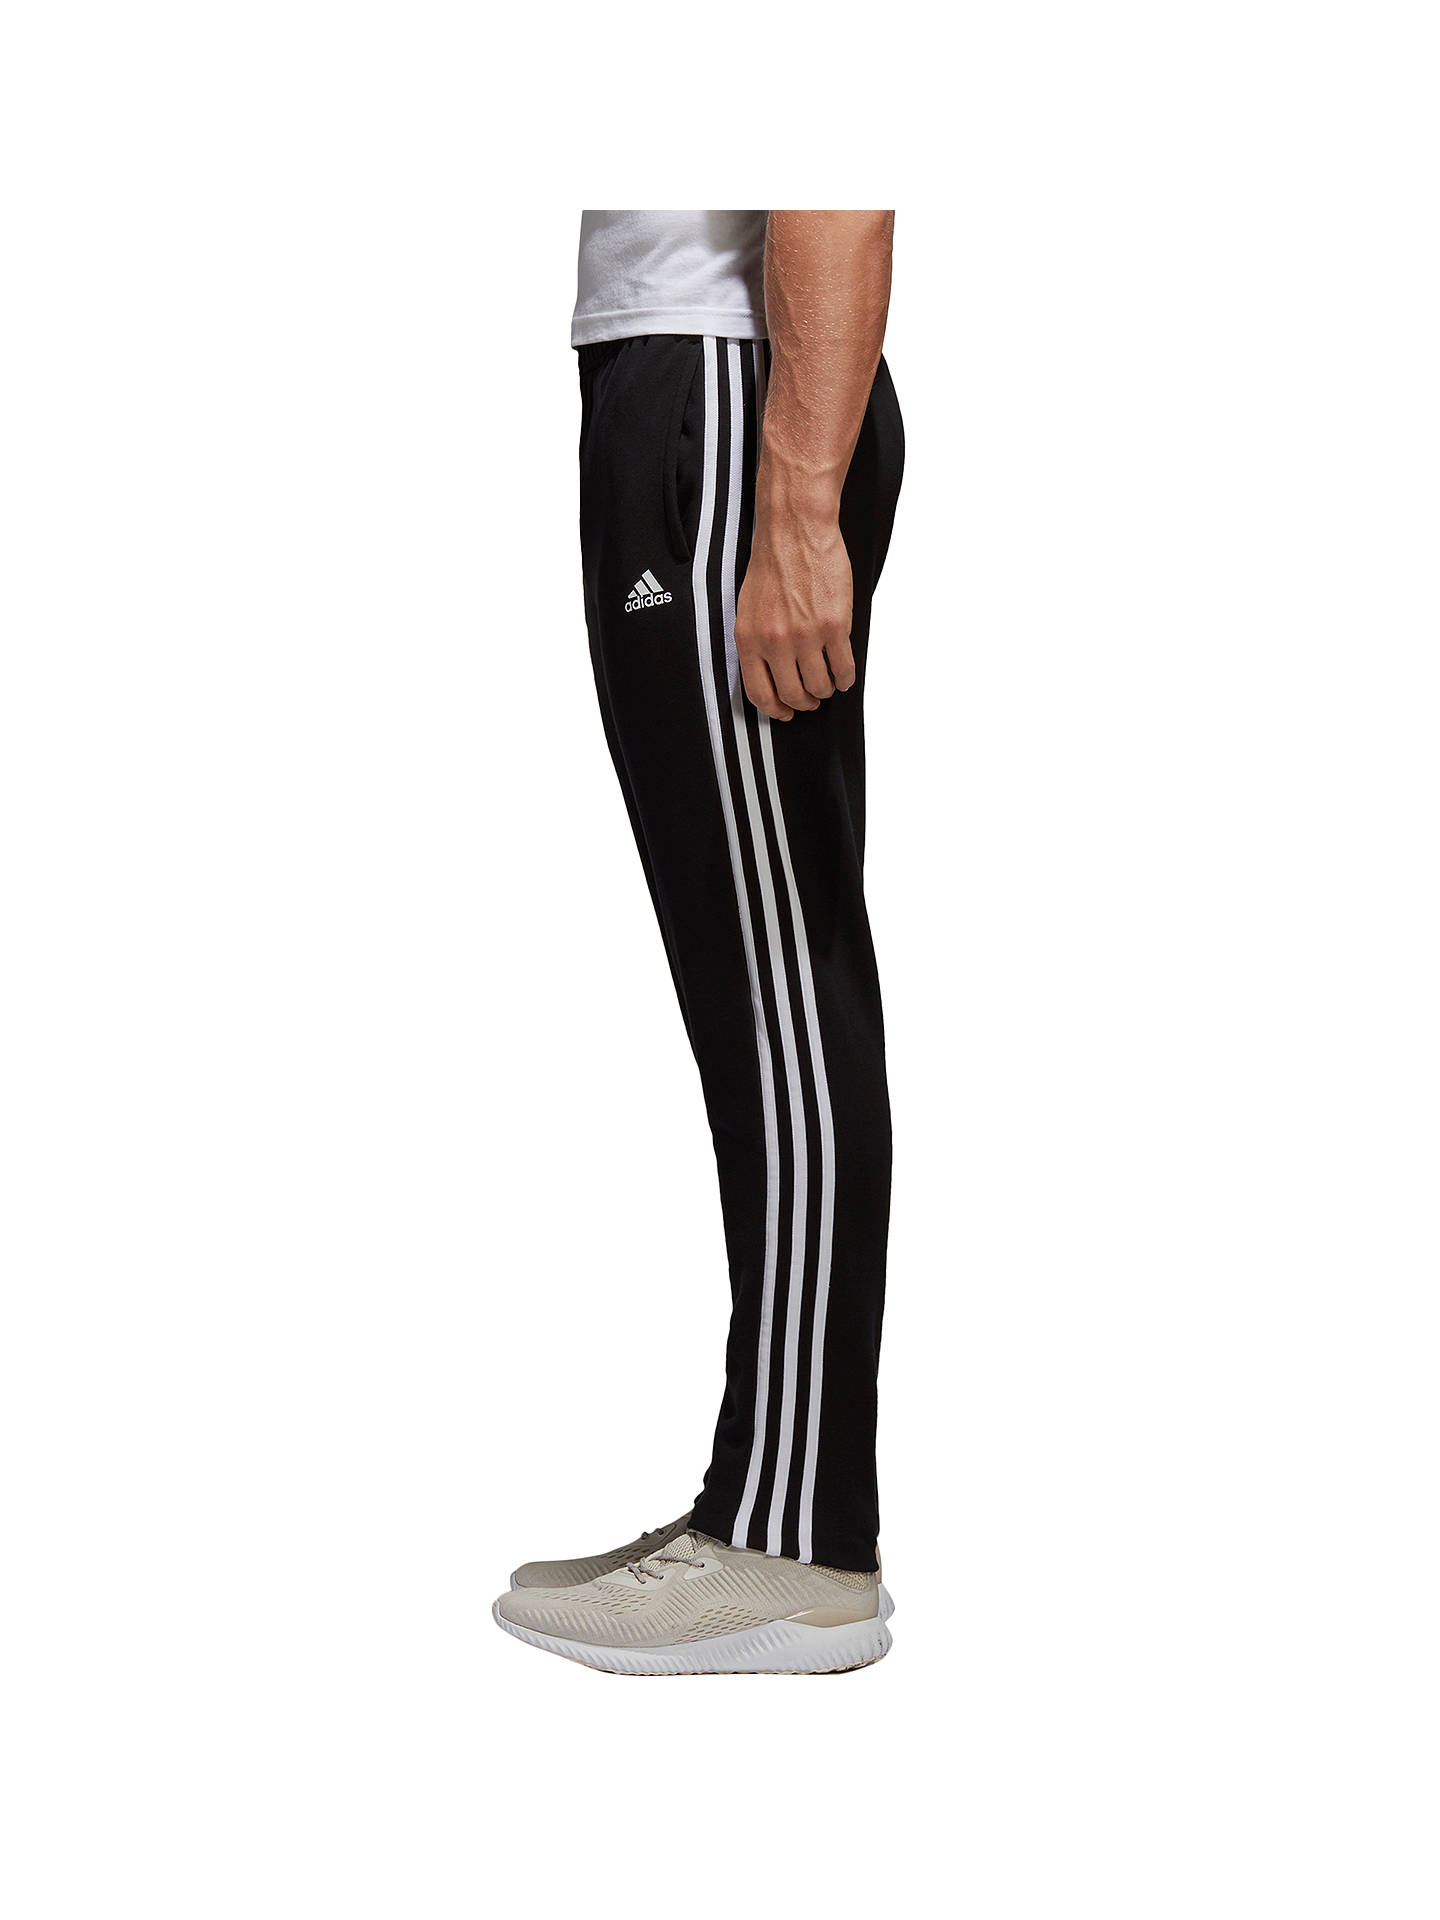 Buyadidas Essential 3 Stripe Training Joggers, Black/White, S Online at johnlewis.com